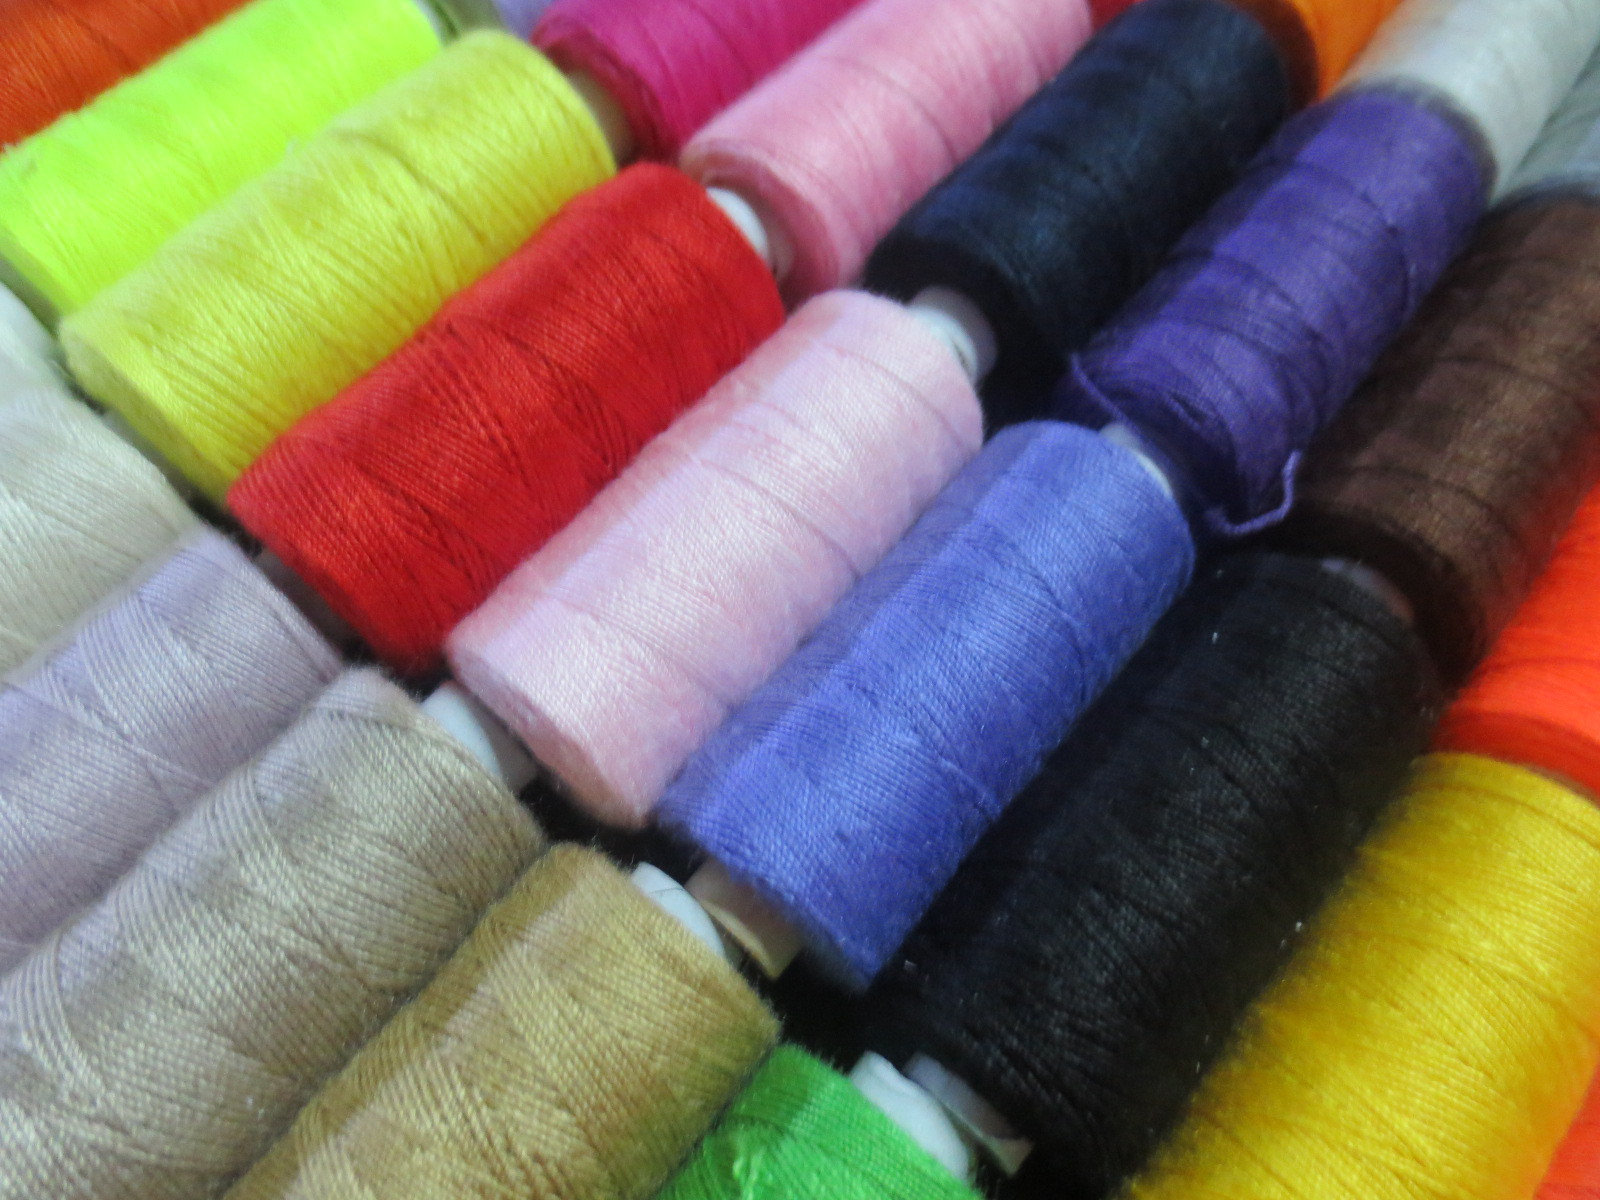 203 large supply Supply polyester thread color number Remarks own circular cotton clothing. Polyeste